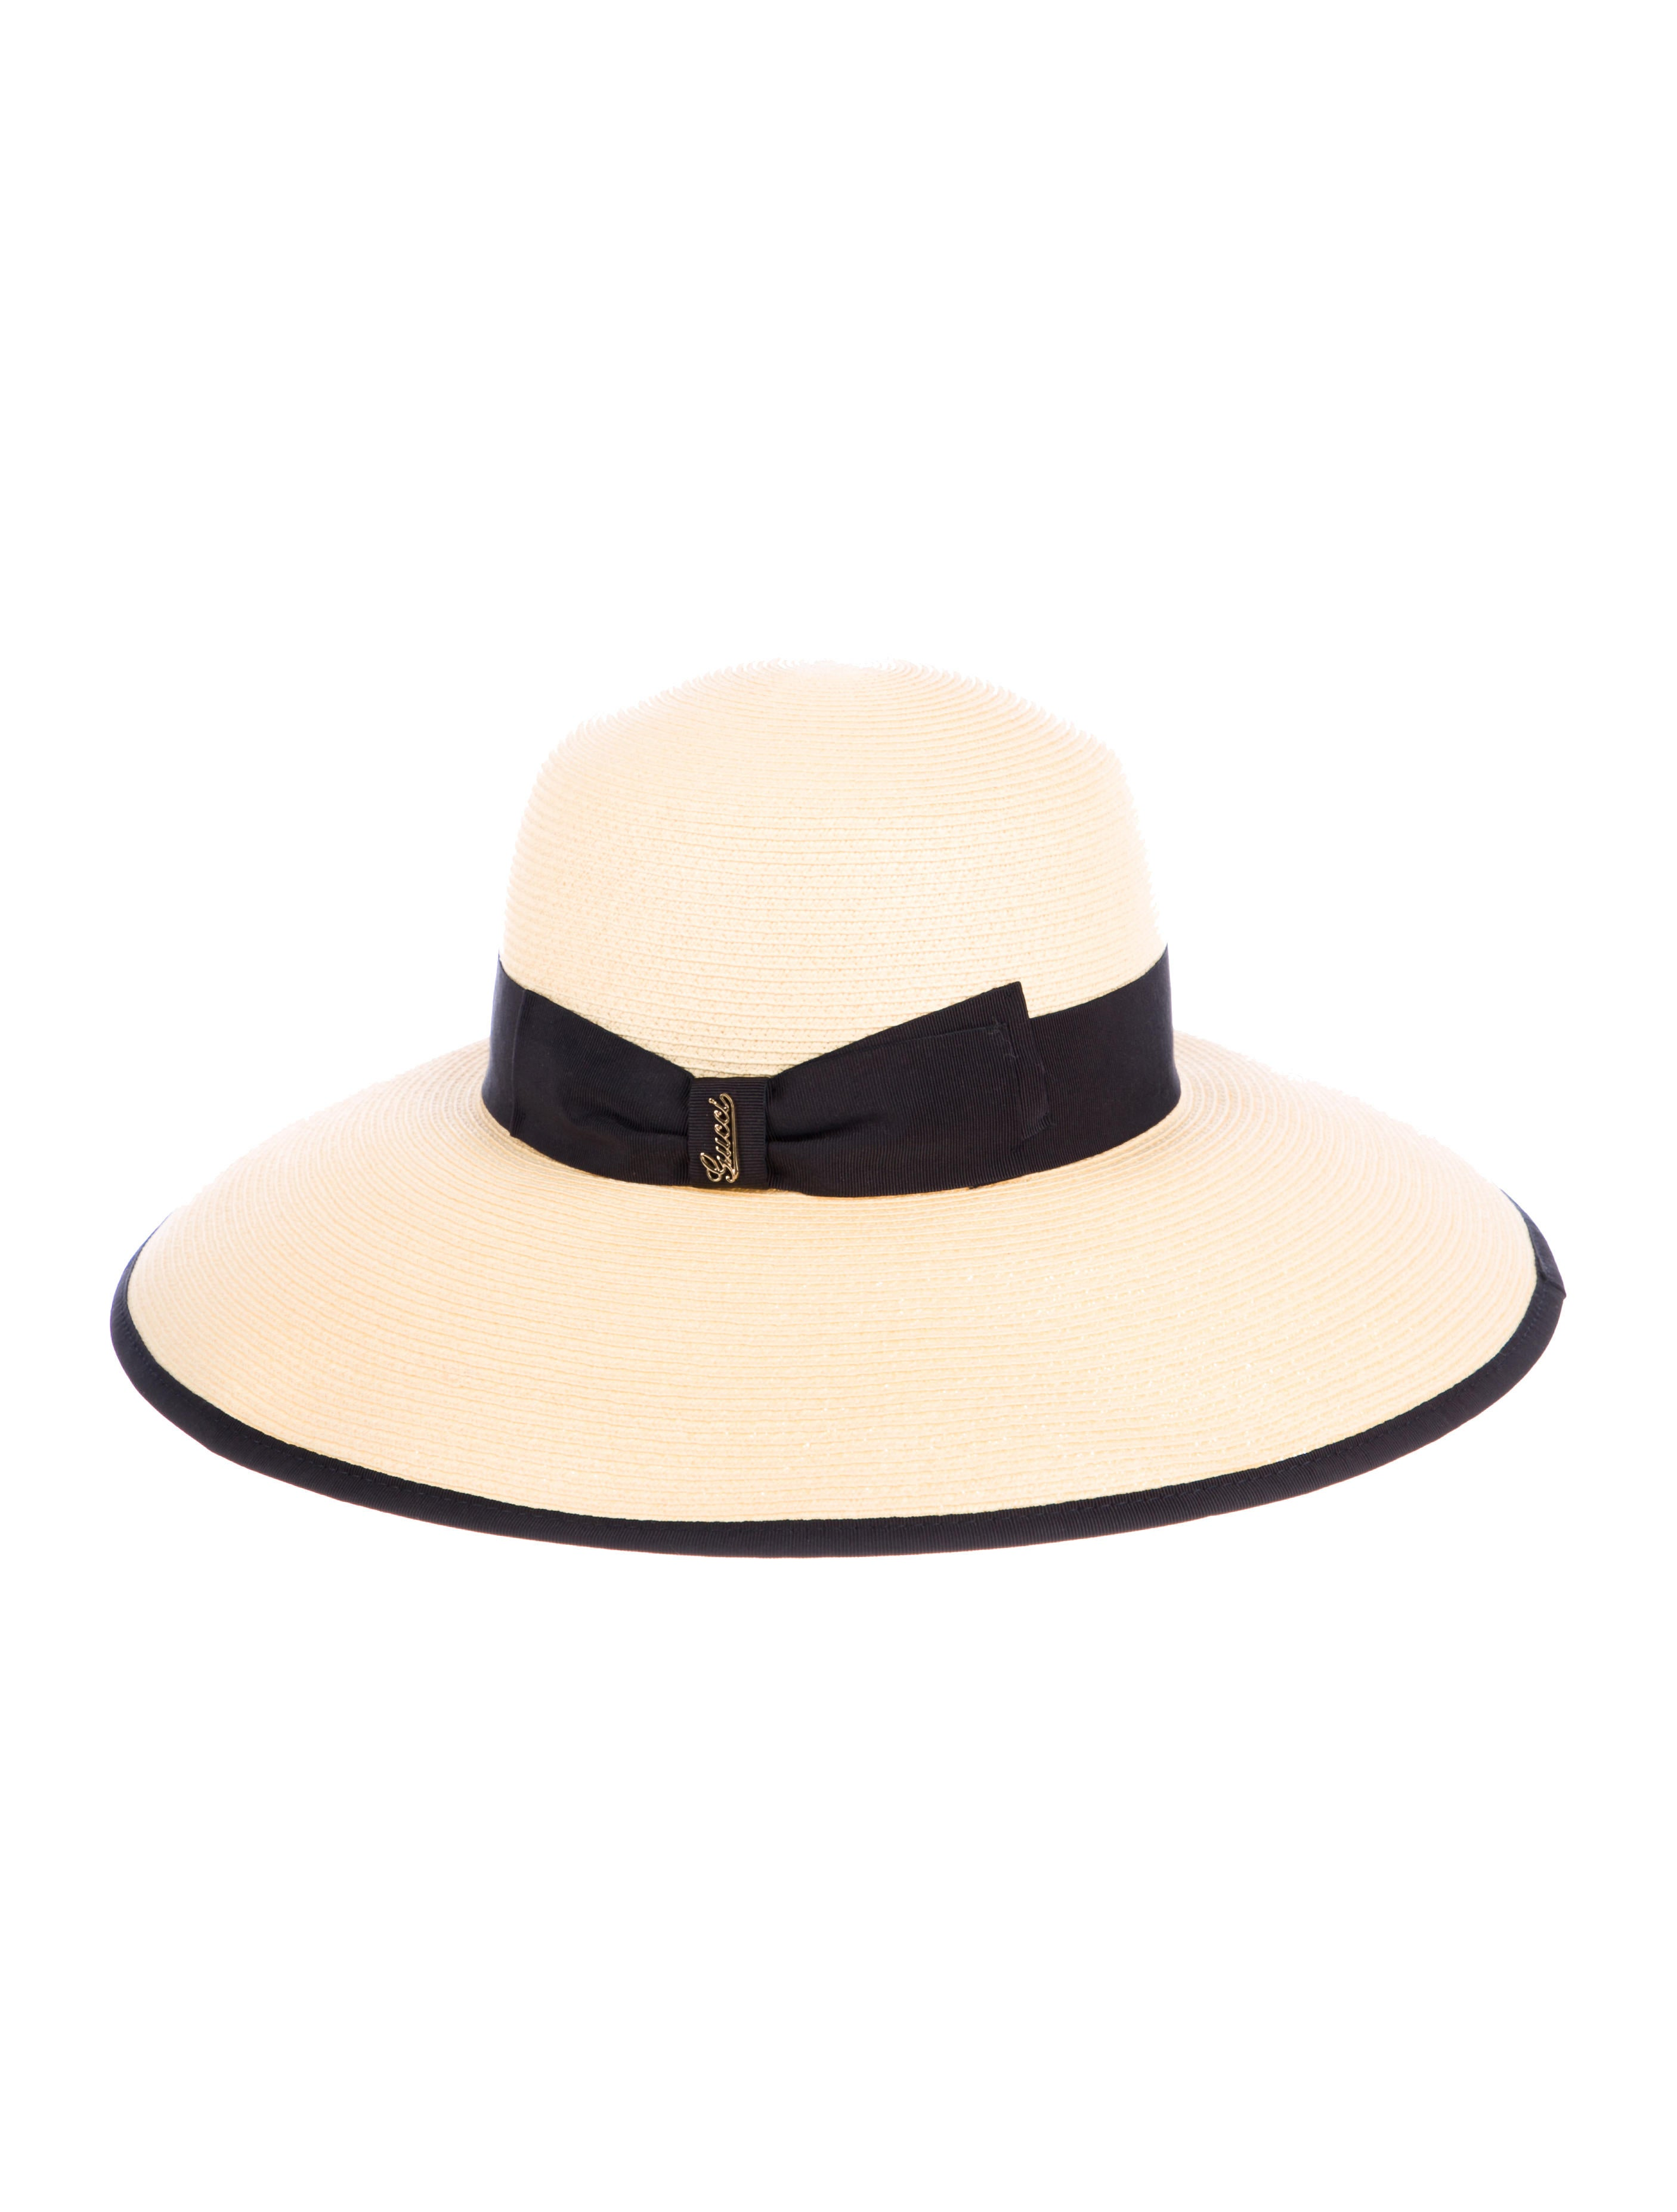 6a0b8bb583b Gucci Straw Wide-Brim Hat w  Tags - Accessories - GUC283144